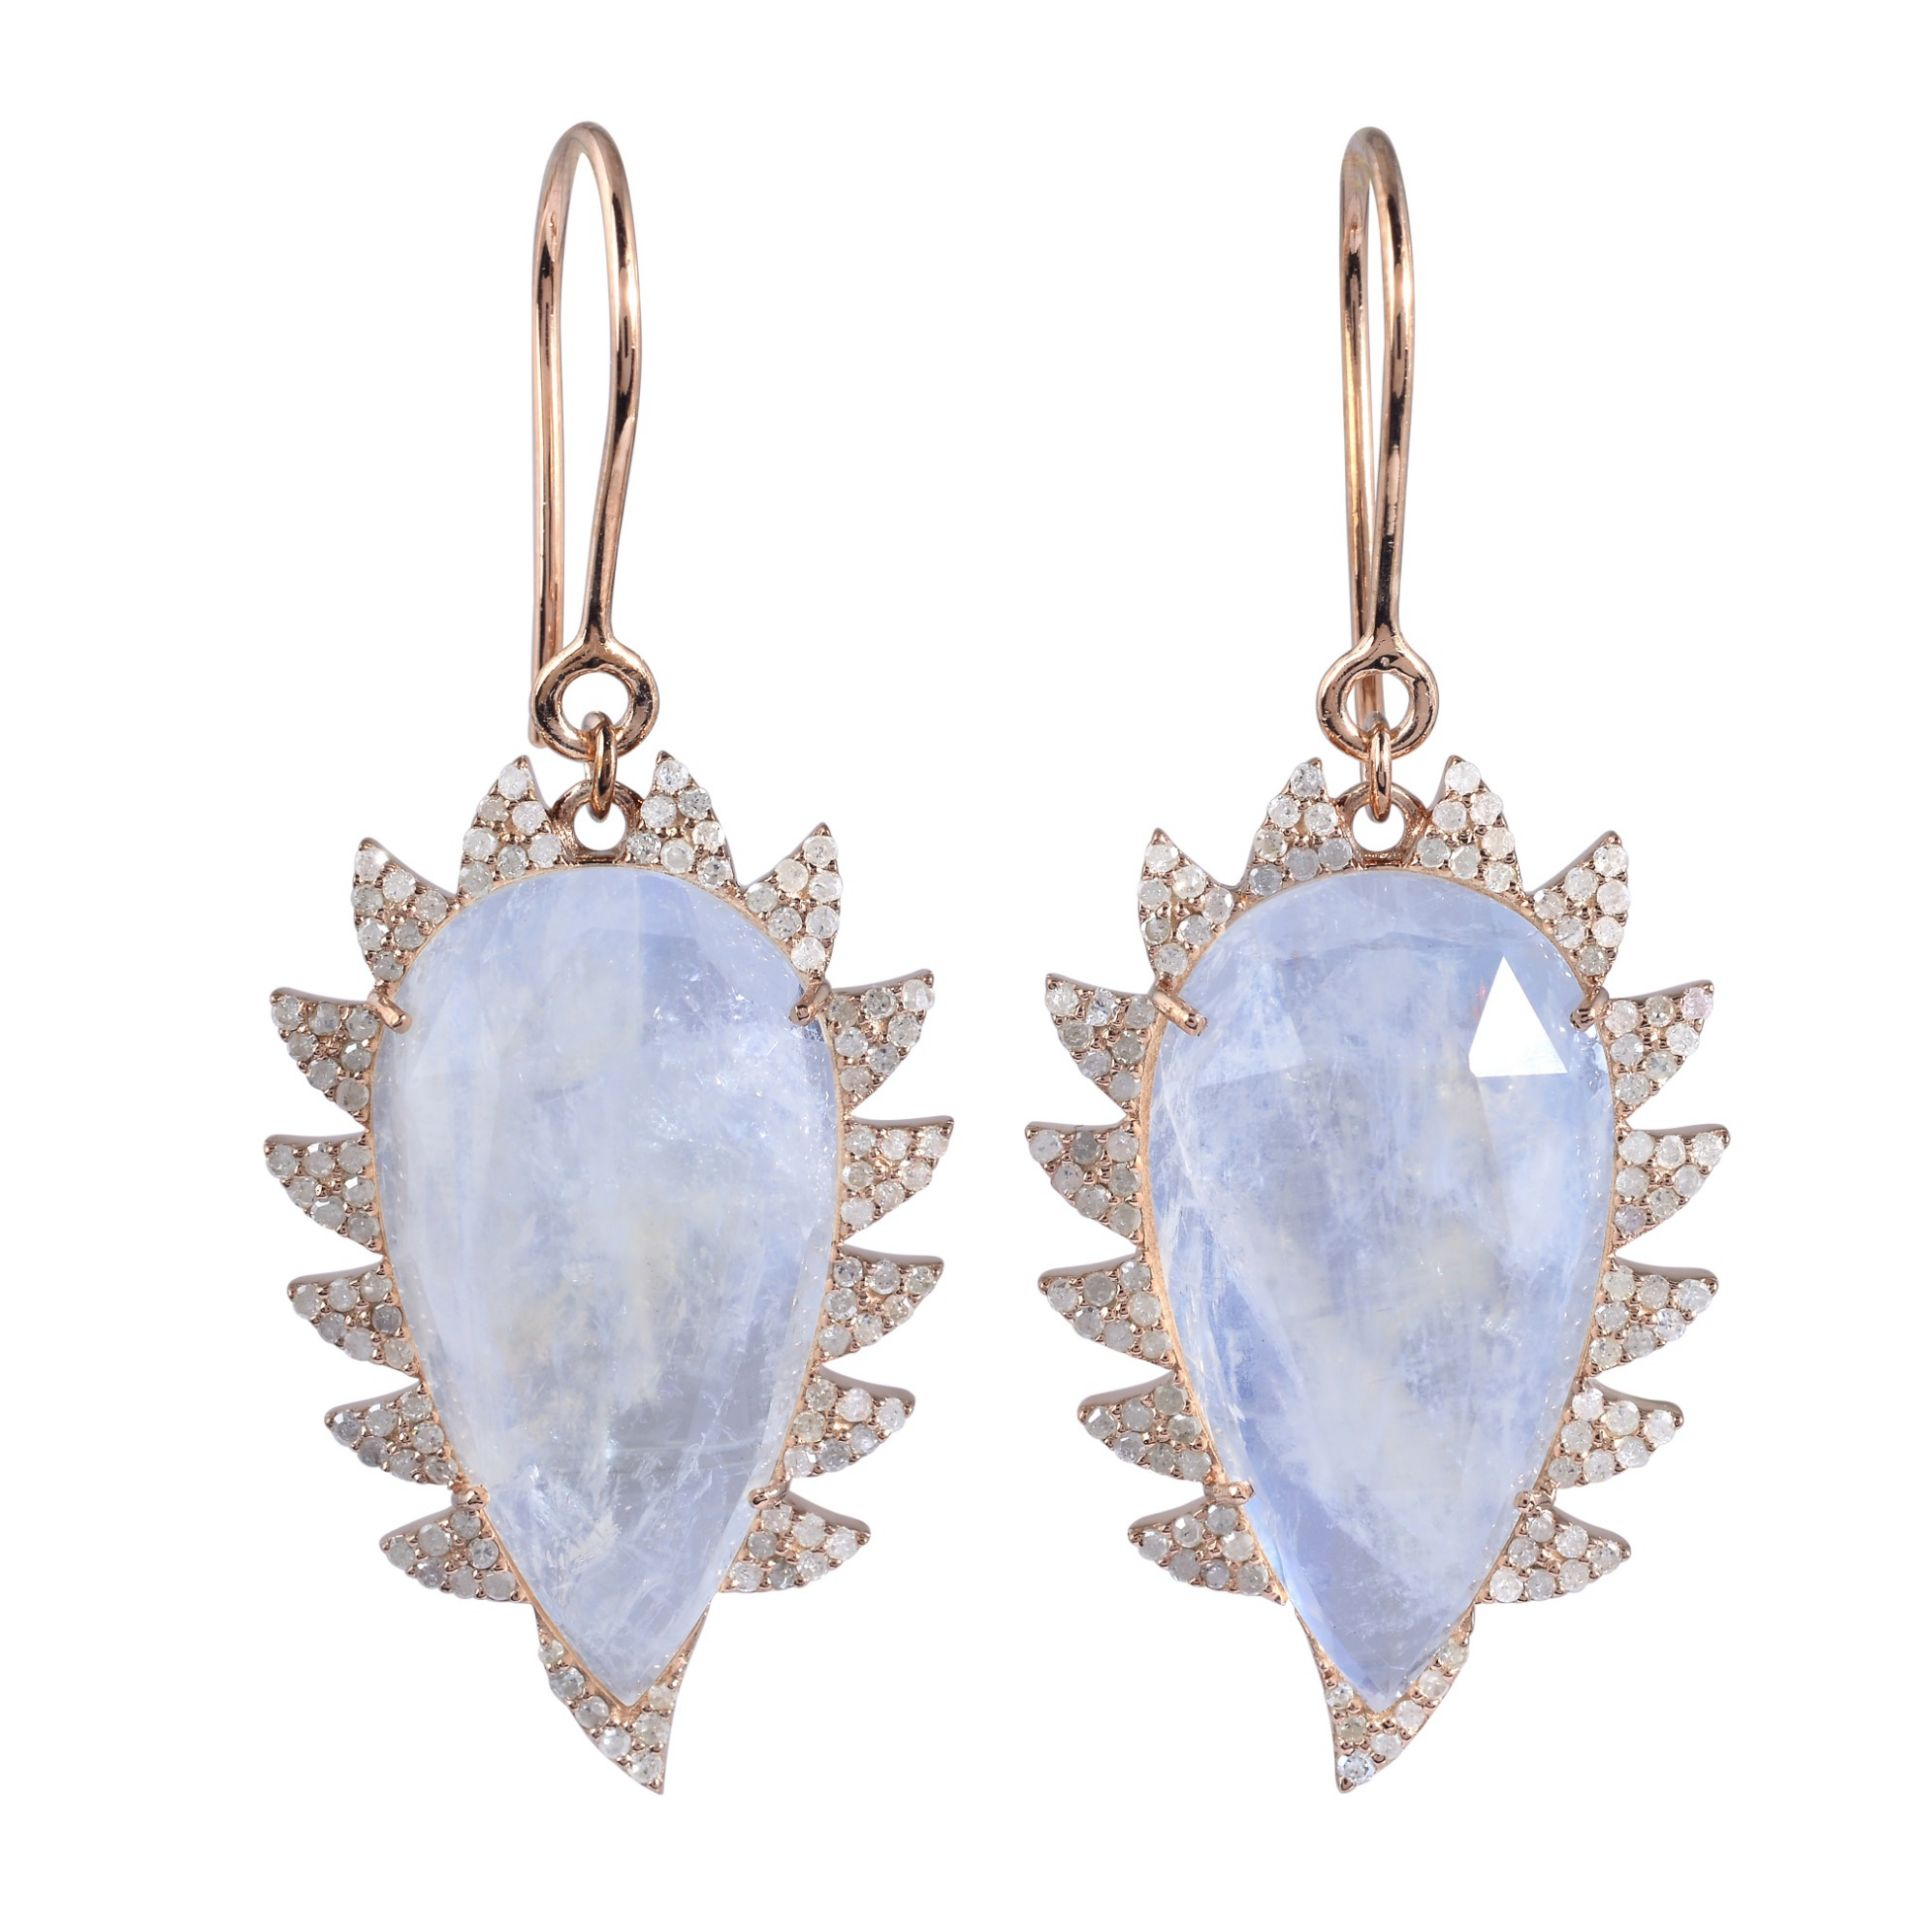 Meghna Jewels Claw Drop Earrings Rainbow Moonstone and Diamonds